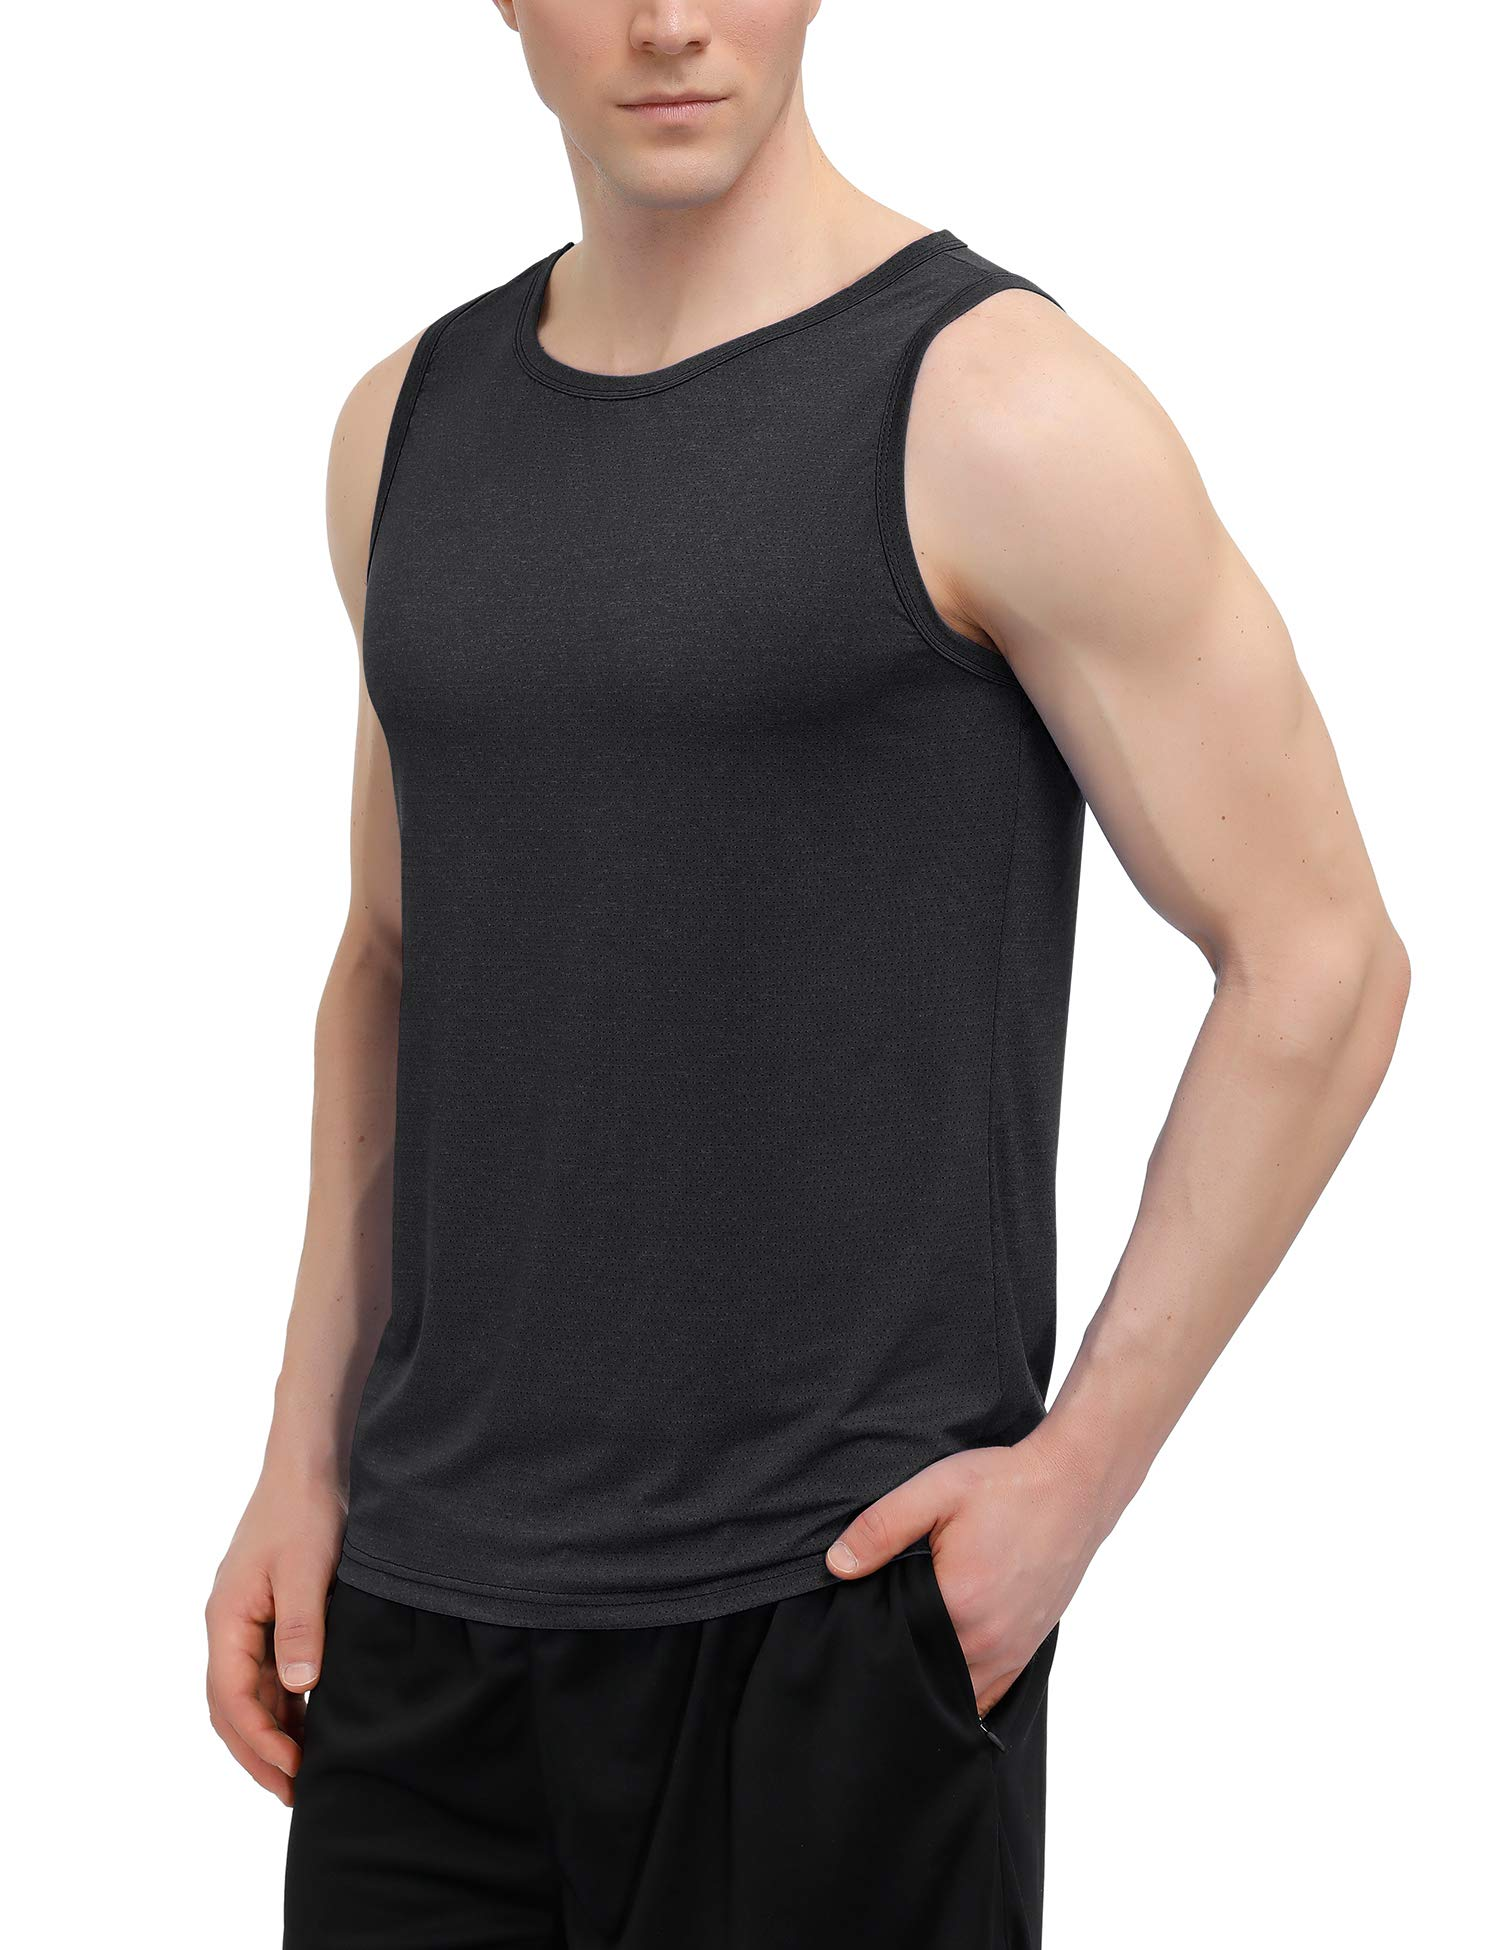 poriff Men's Sport Tops Workout Training Tanks Muscle Fitness Shirts Loose Fit Quick-Dry Mesh Vest